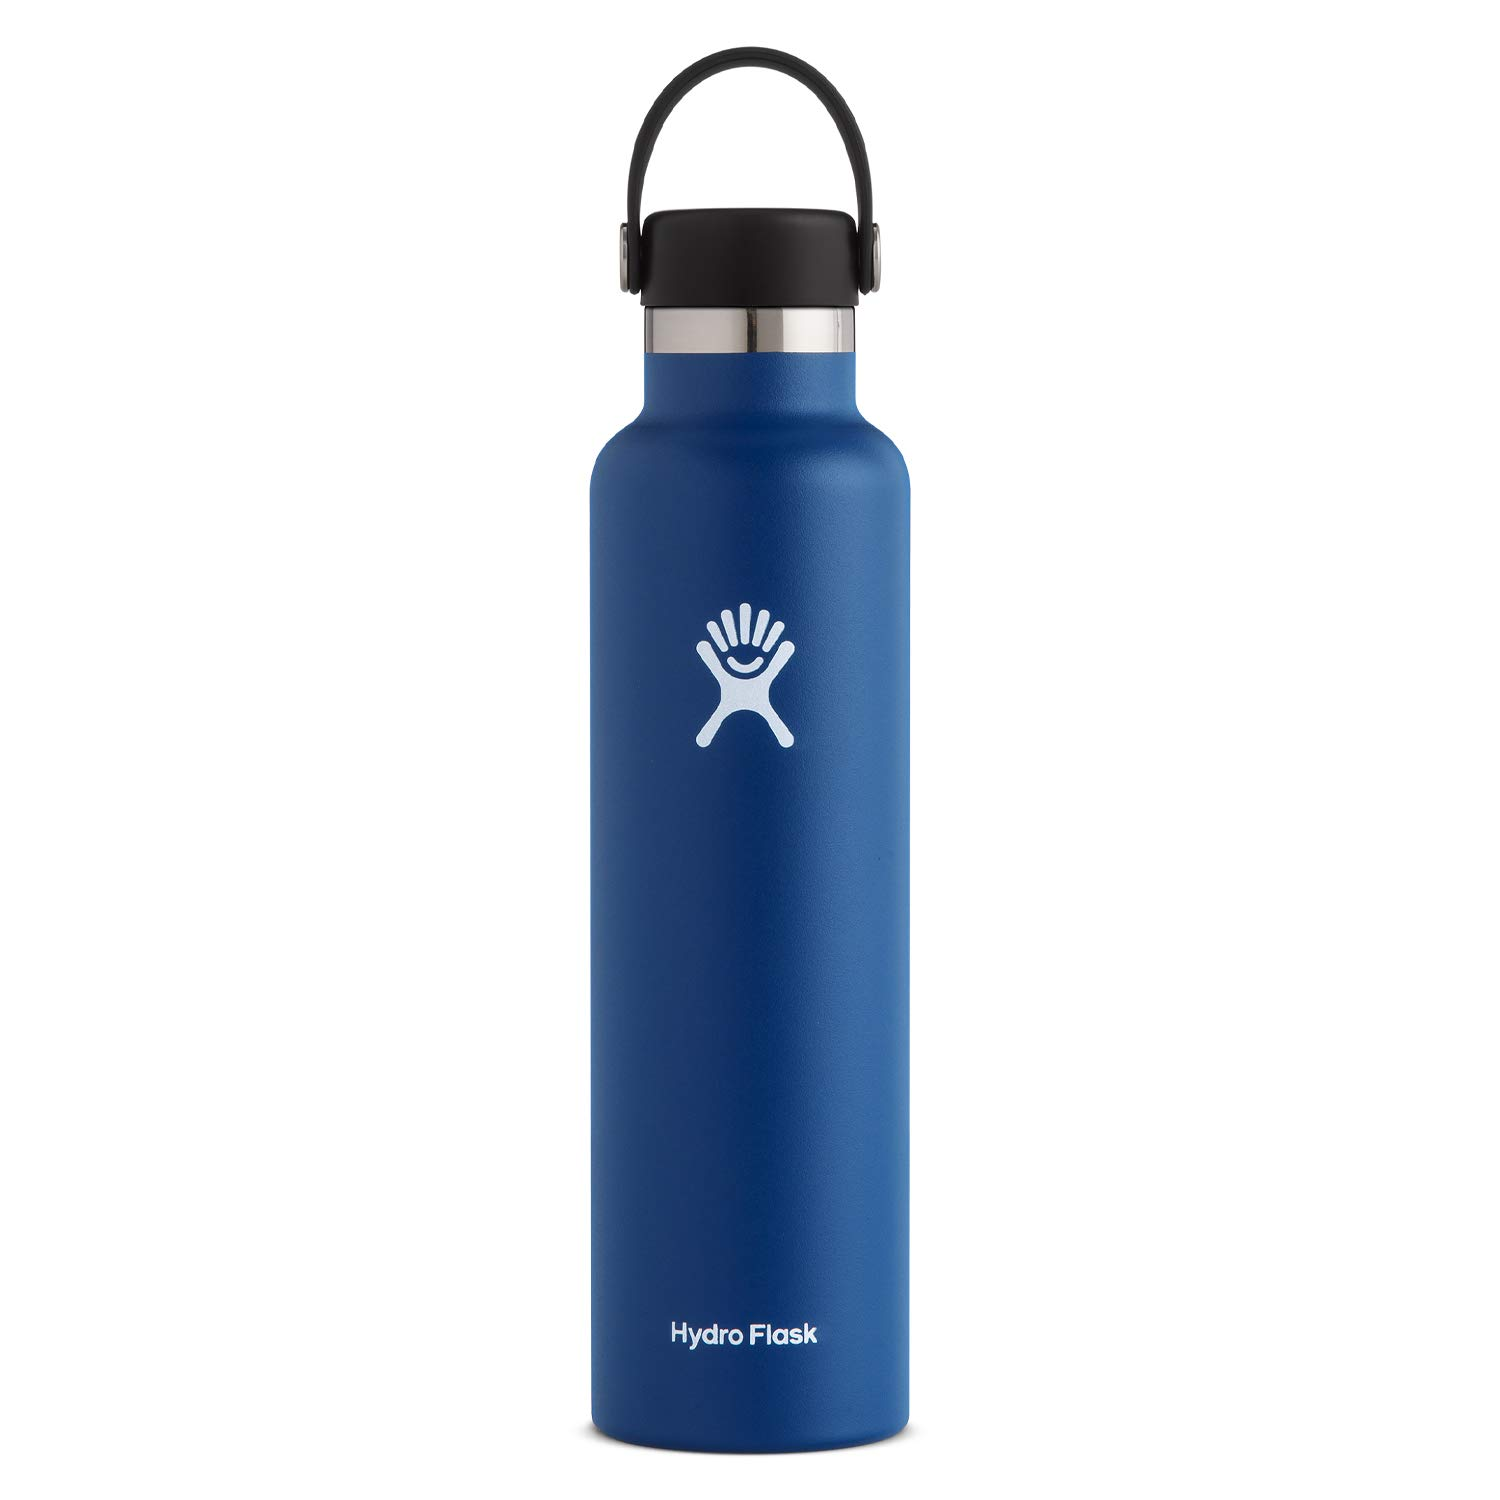 Hydro Flask Water Bottle | Stainless Steel & Vacuum Insulated | Standard Mouth with Leak Proof Flex Cap| Multiple Sizes & Colors